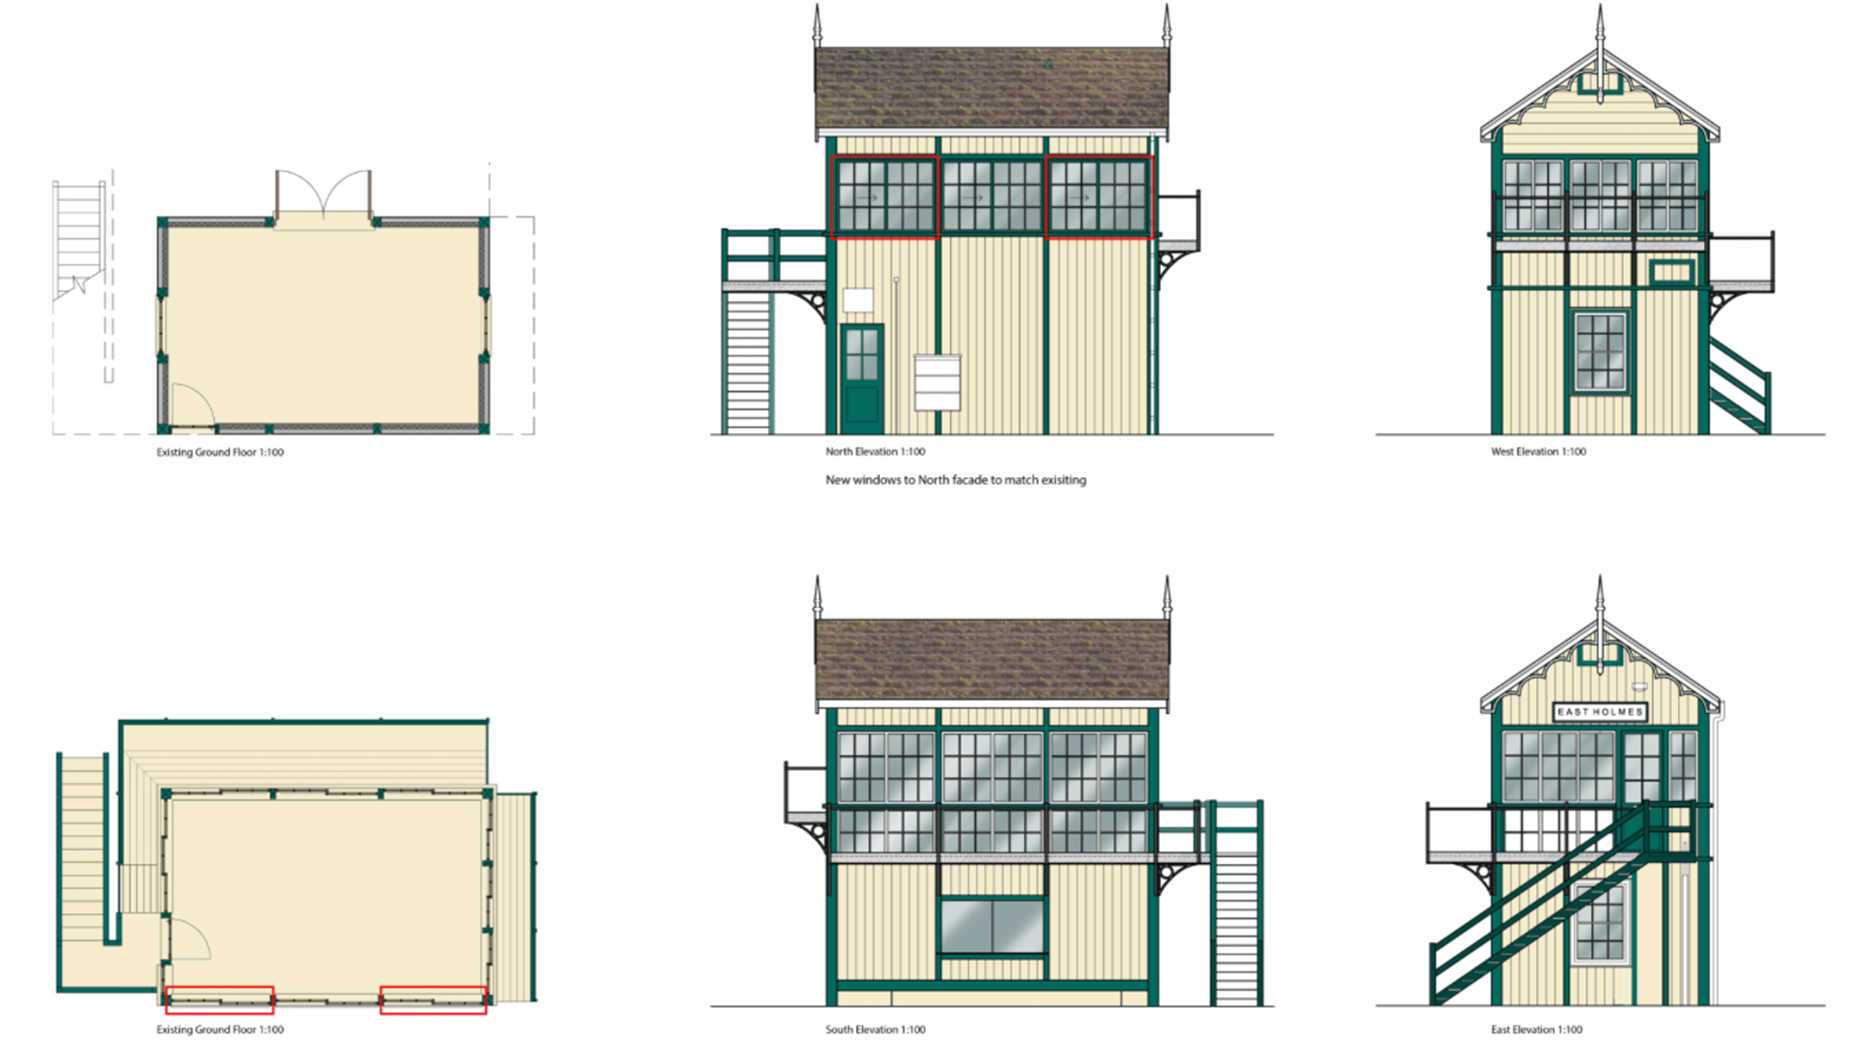 The signal box would be lifted from it's current location next to the railway and given new windows. Image: Stem Architects